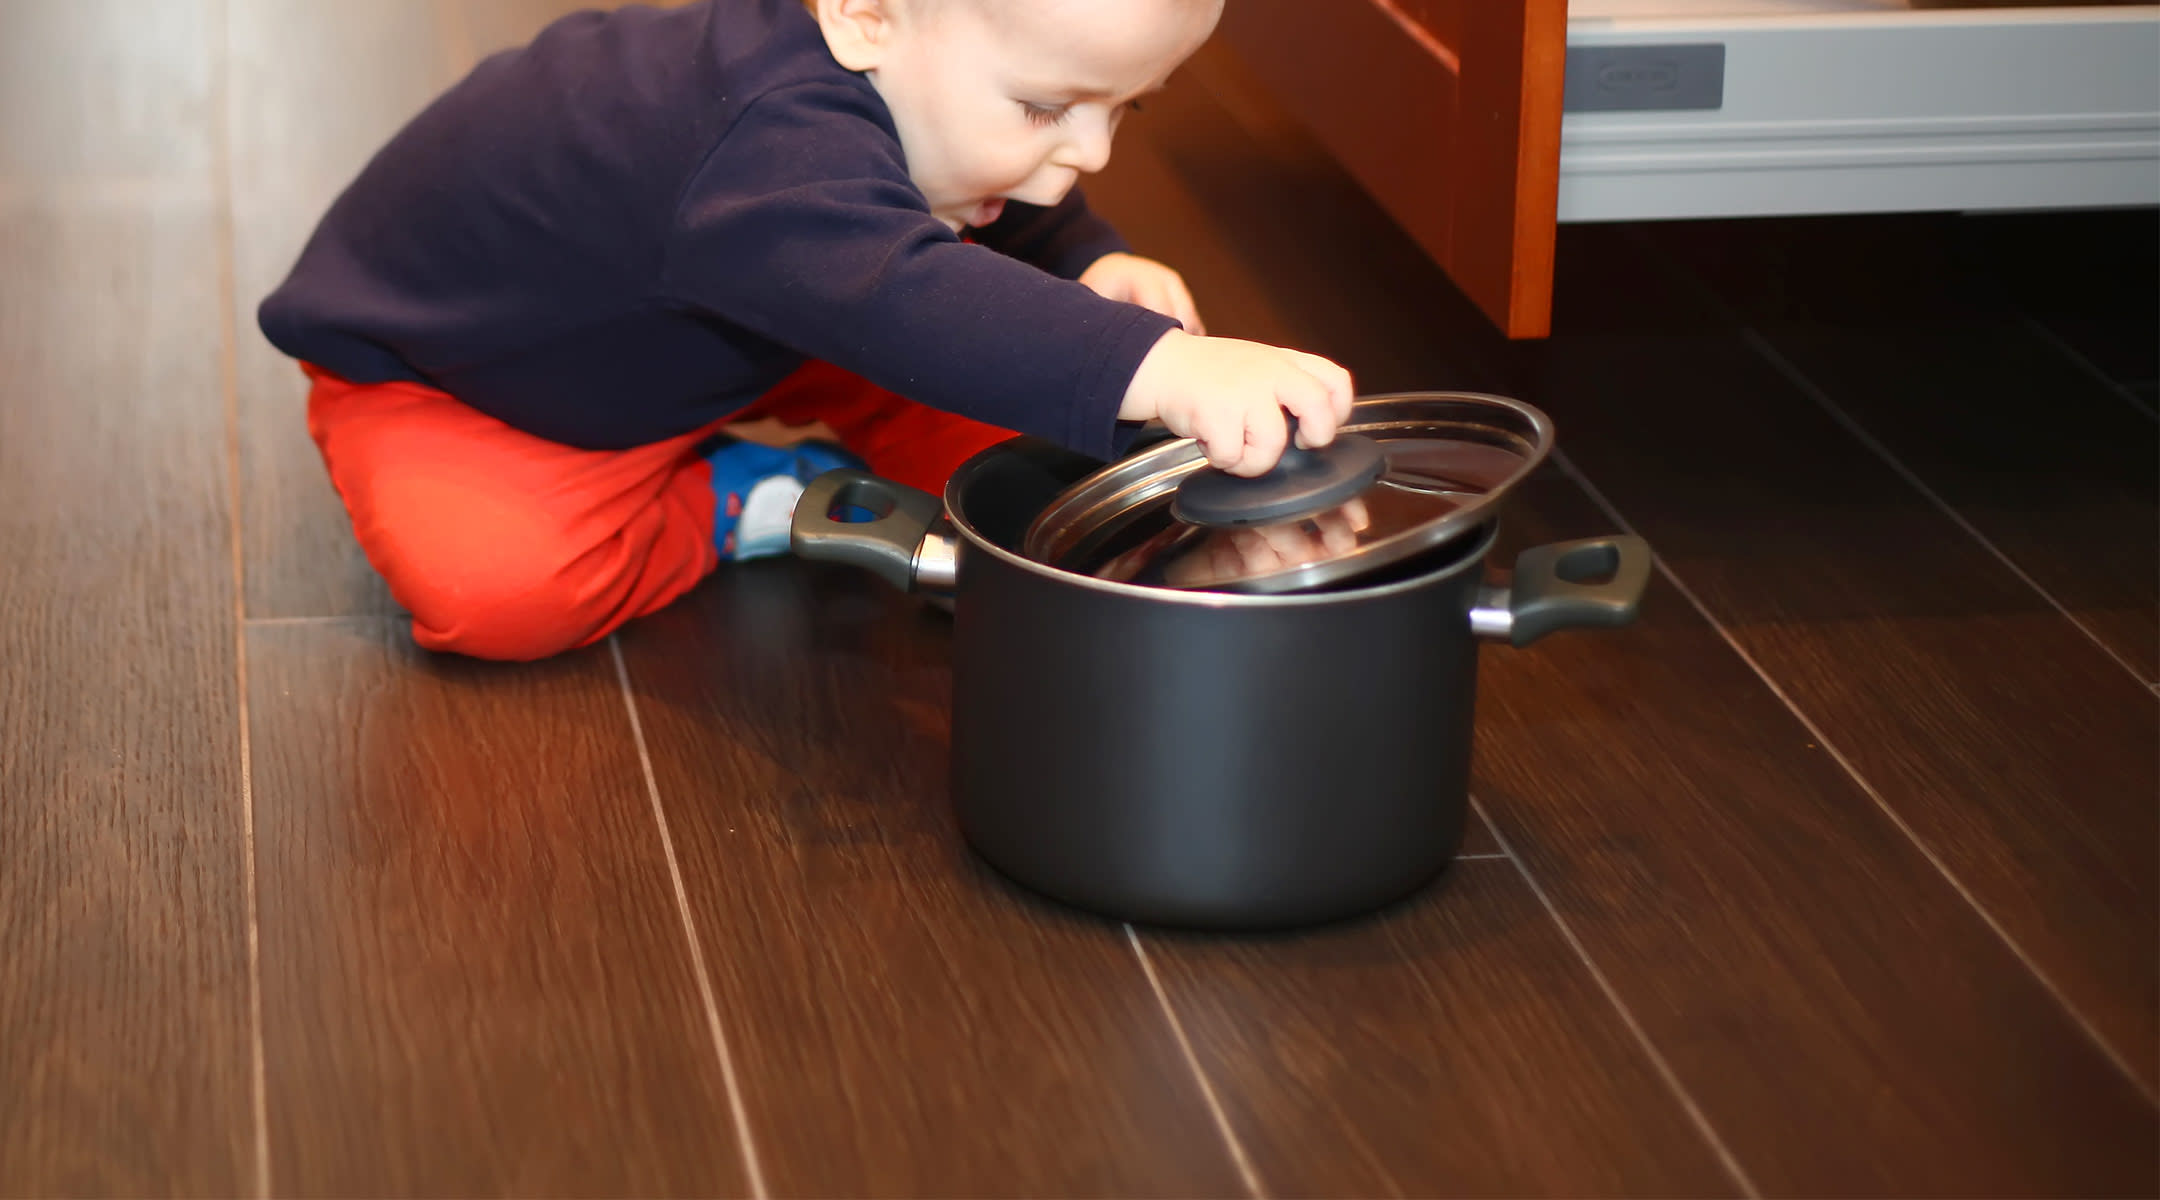 baby playing with pot on kitchen floor